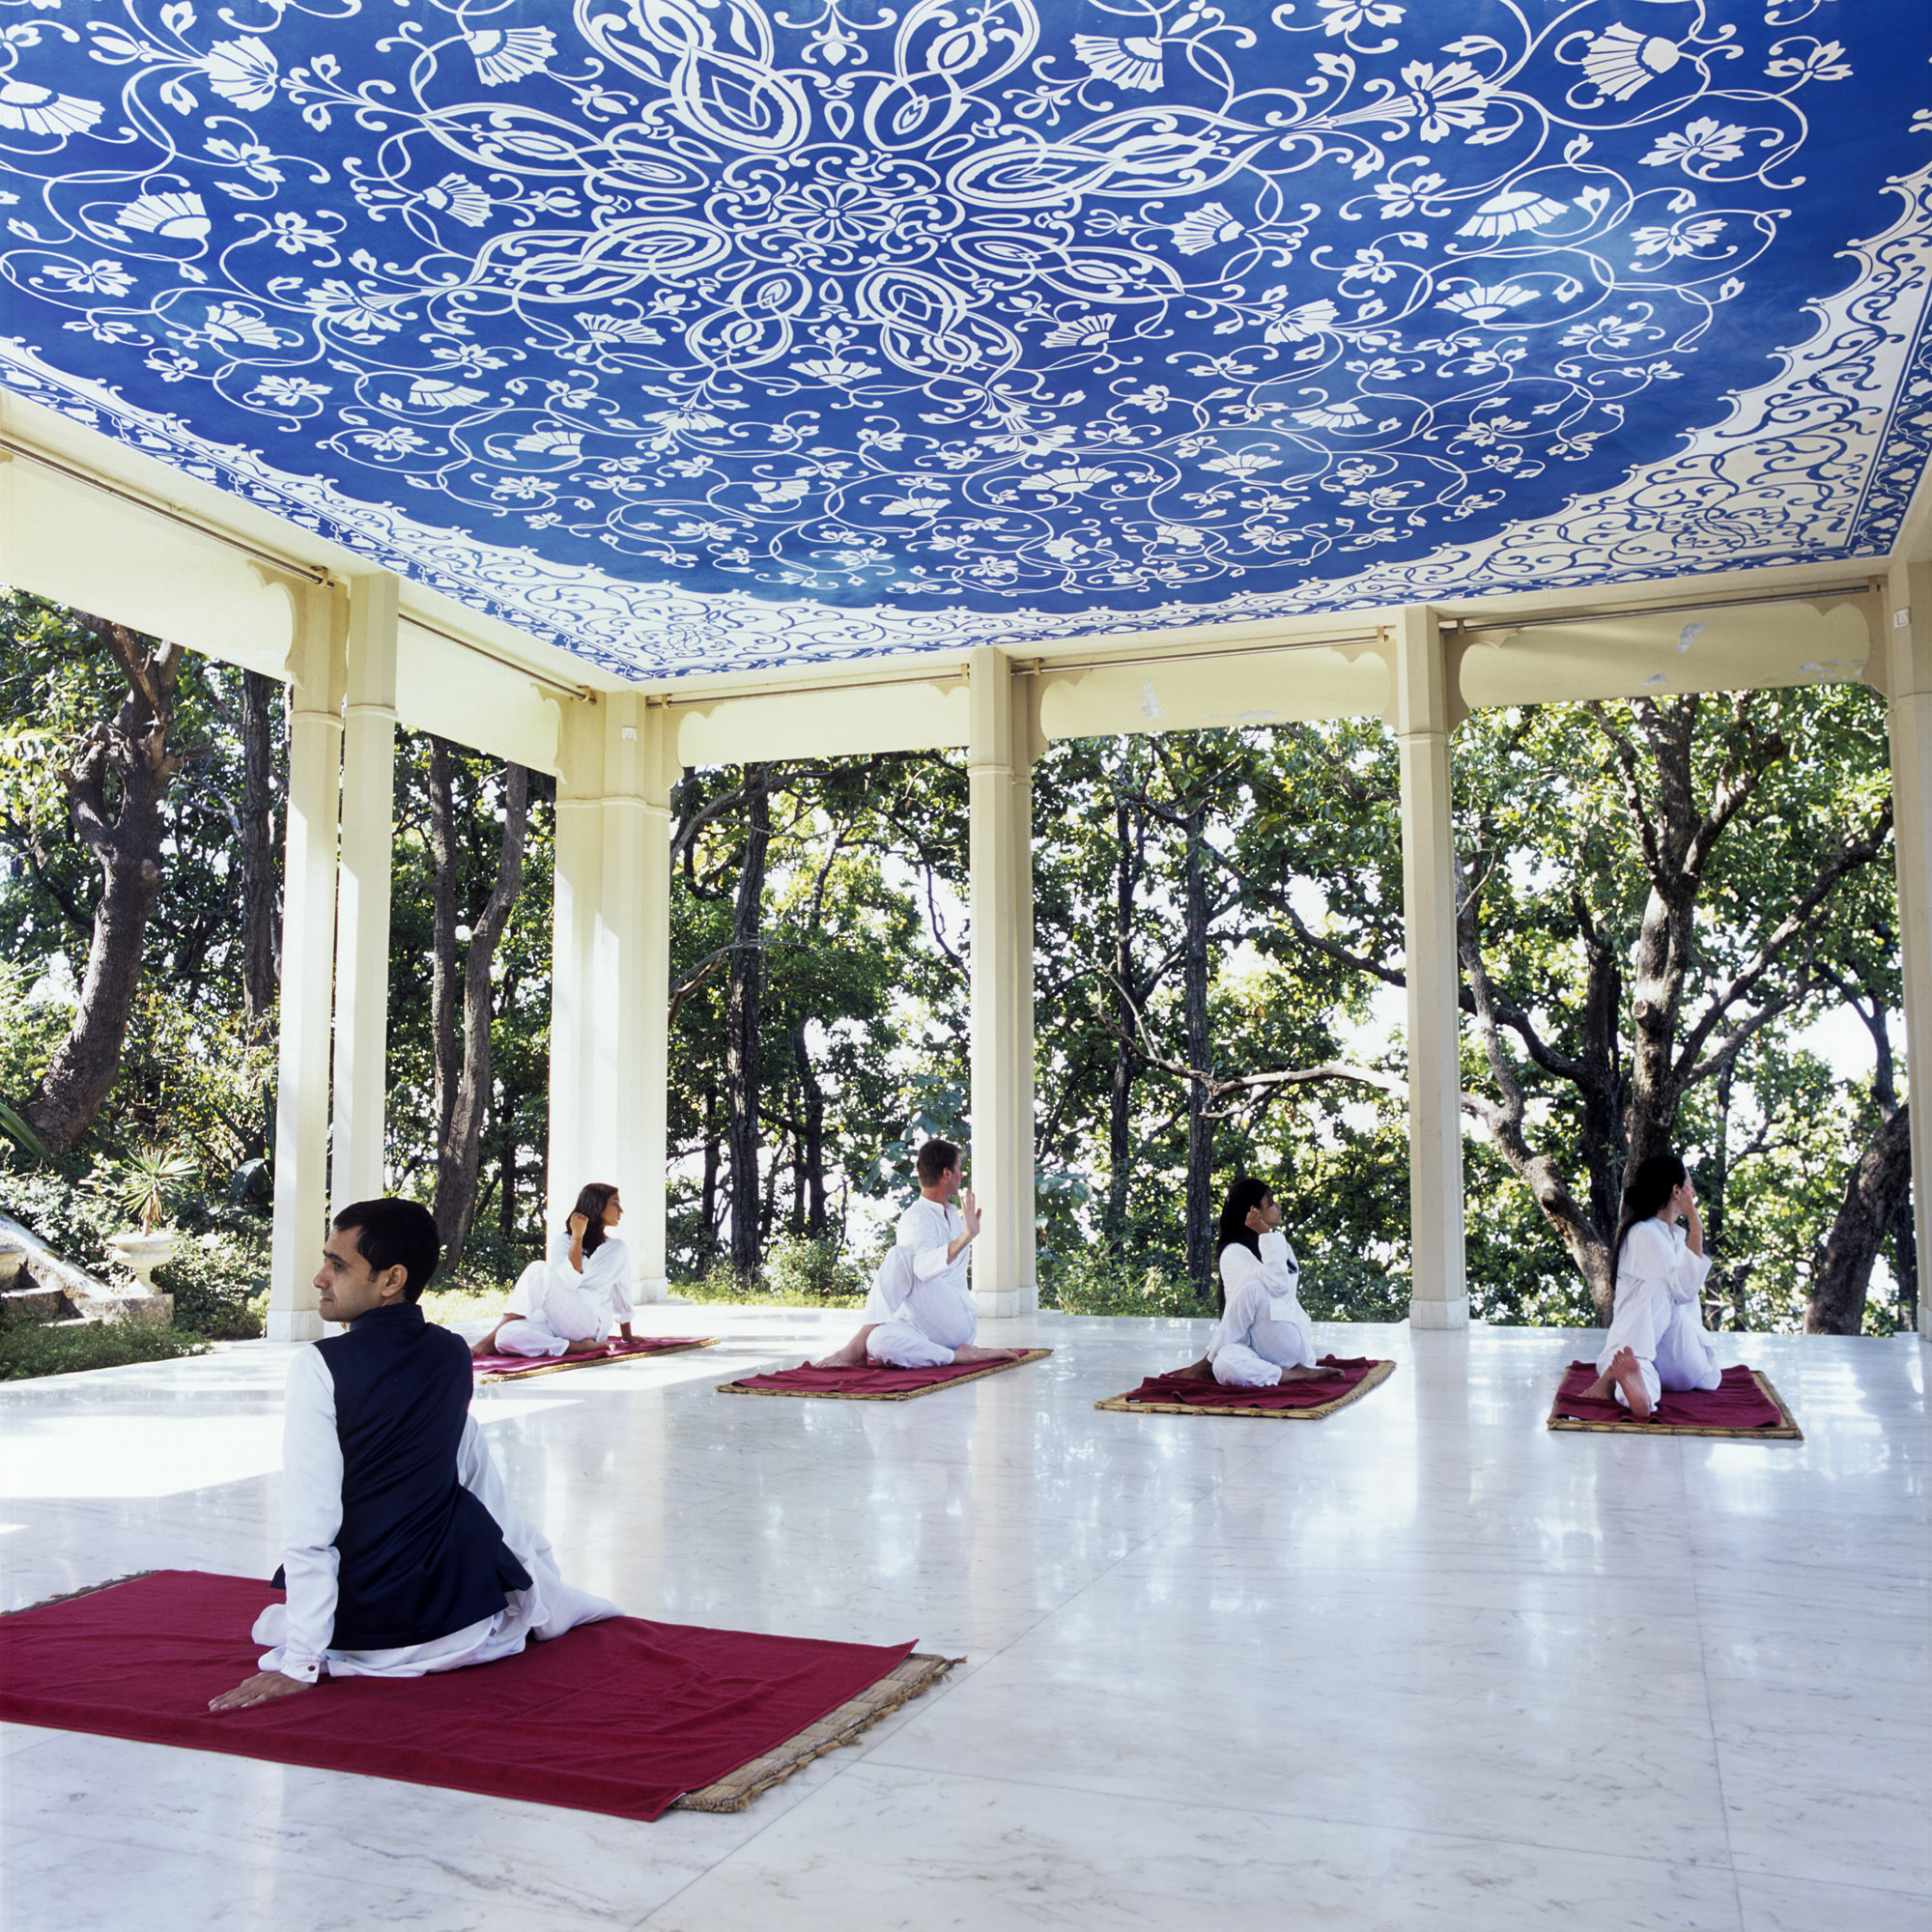 Book_Yoga in India_2